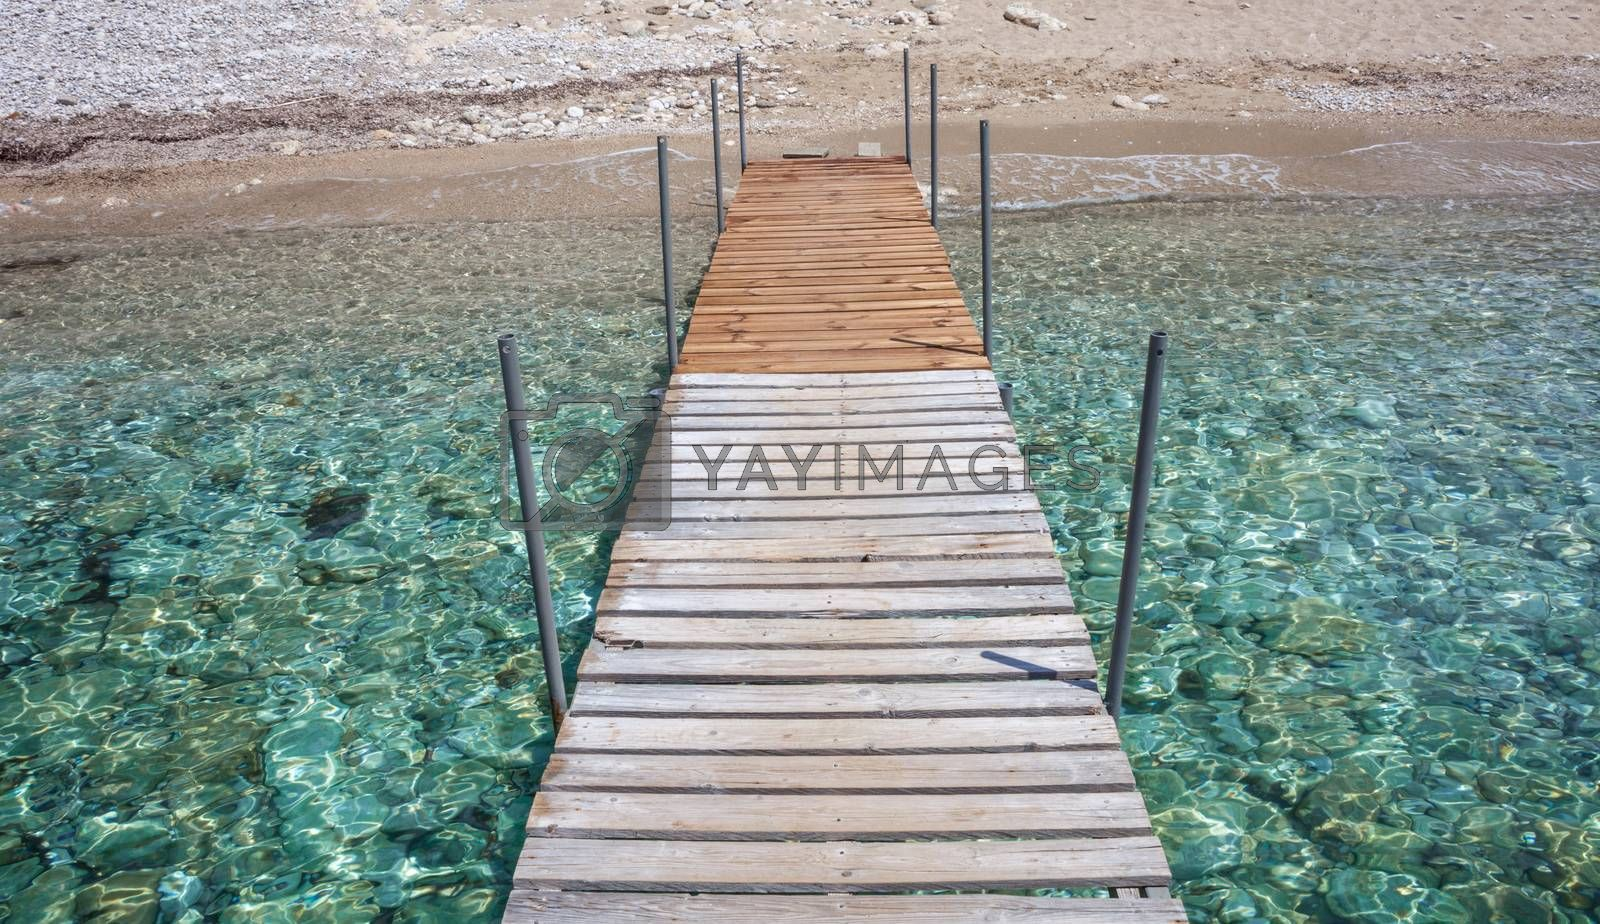 Patterned dock over the water. Wooden post supporting the walk bridge.Crystal clear water glittering under the sun. Scenic view of a travel destination